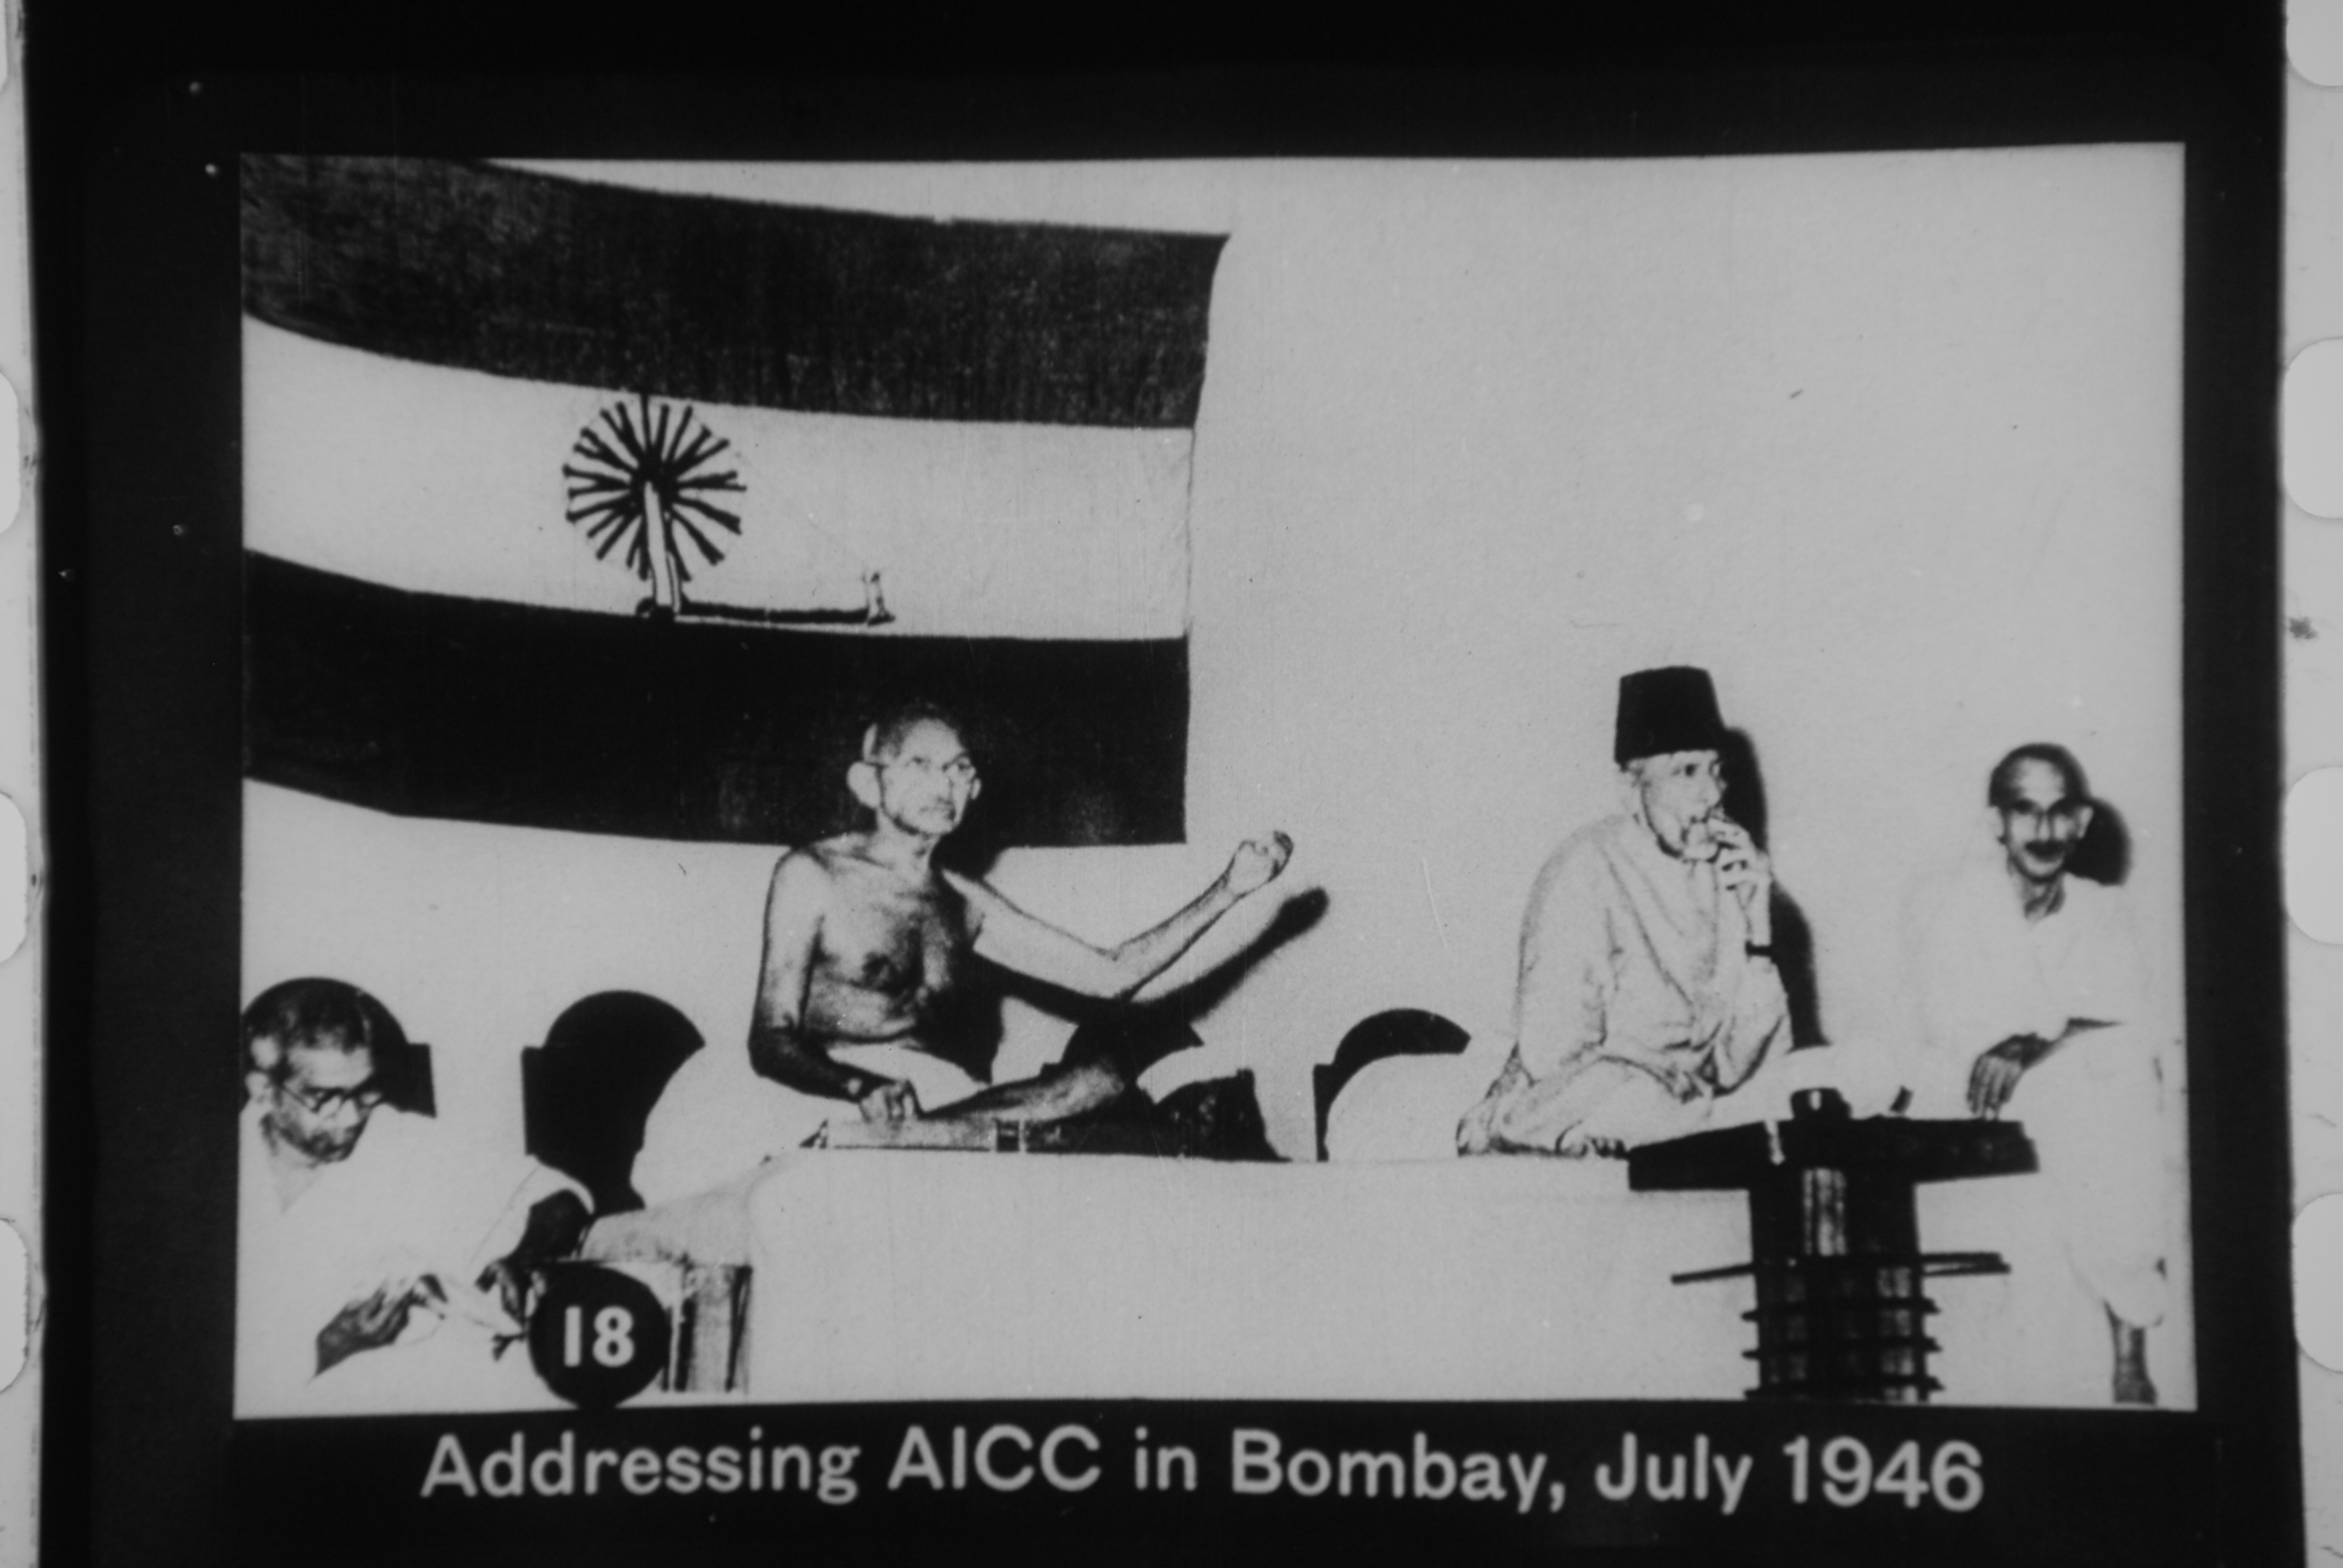 Gandhi addressing AICC in Bombay, July 1946.